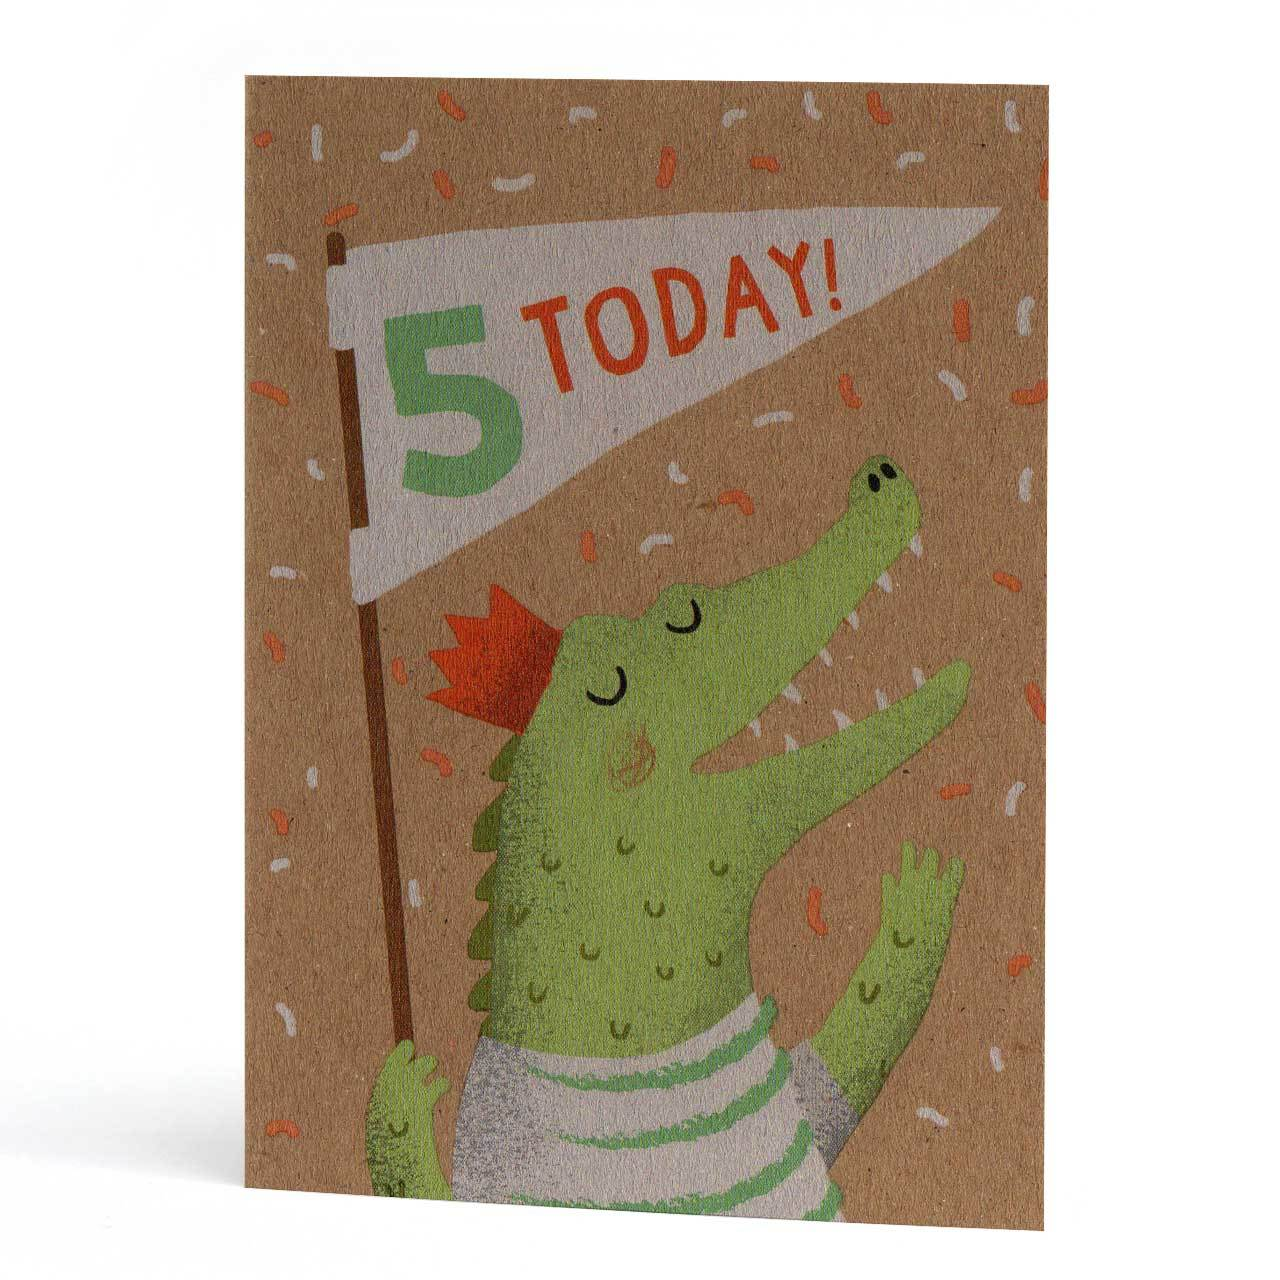 Fifth Birthday Croc Greeting Card